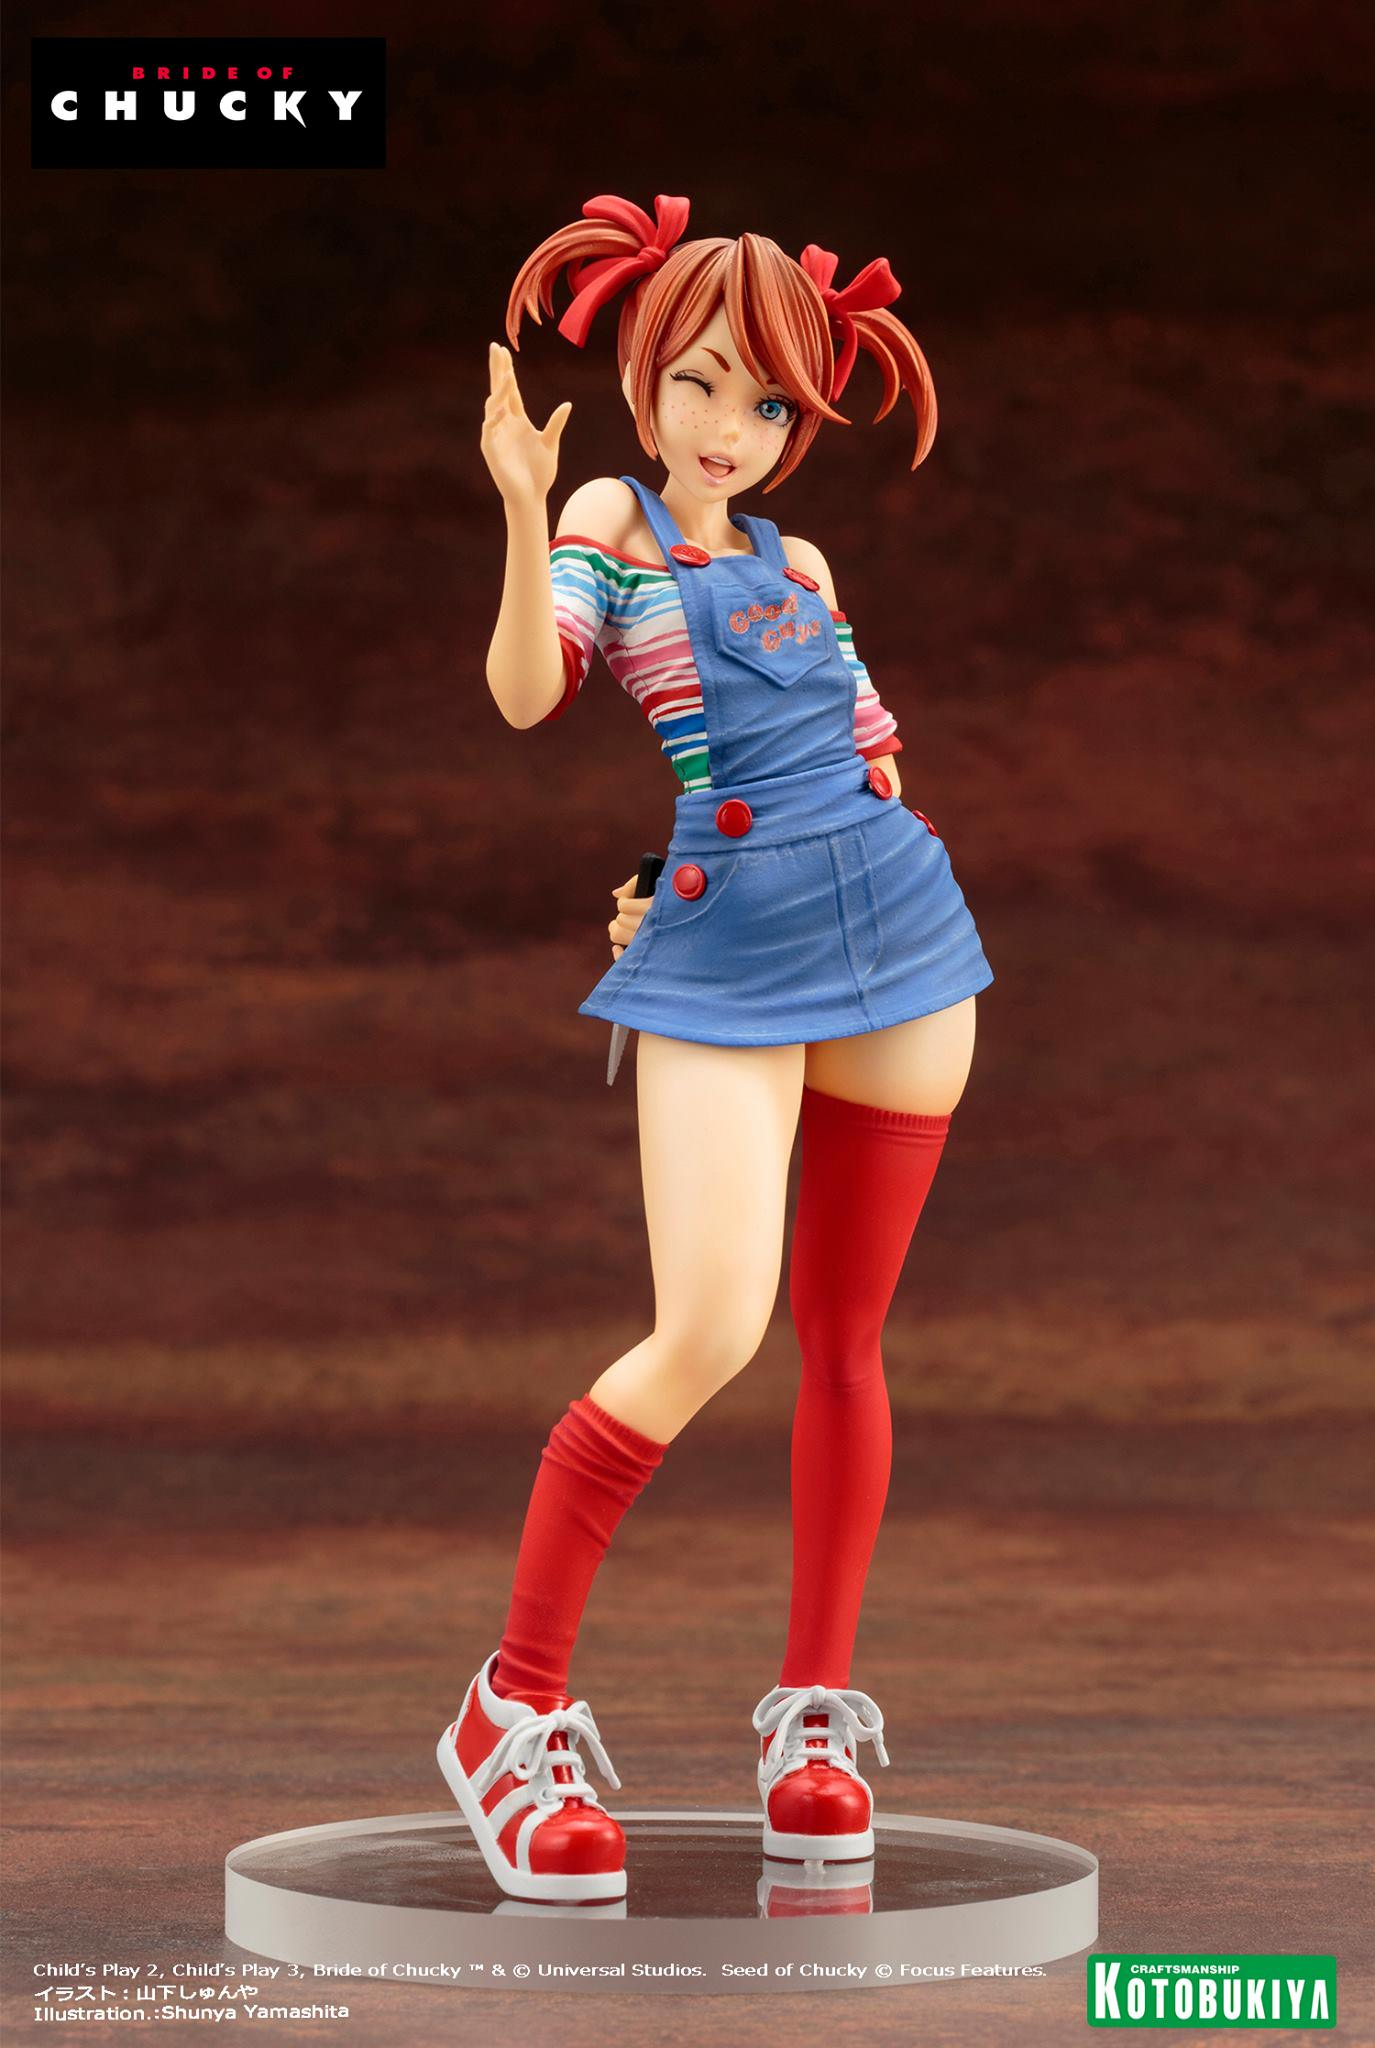 Link a bishoujo-chucky-pic-01